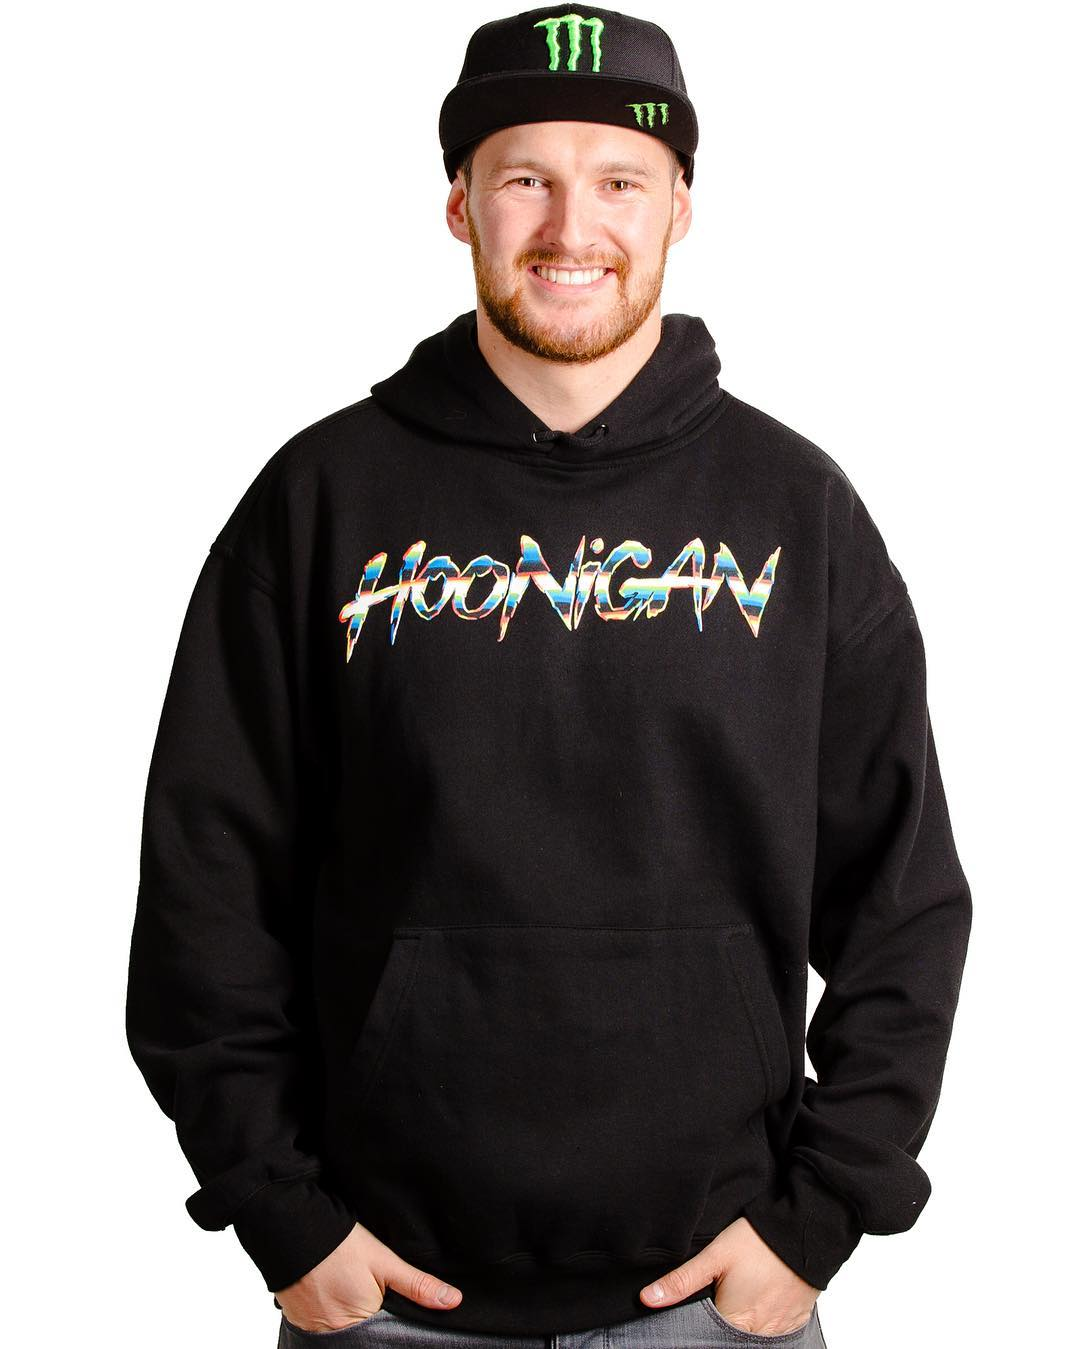 Our newest shedder, @andreasbakkerud, in the @felipepantone designed pullover hoodie. Complete collection available now on #hooniganDOTcom. Link in bio.